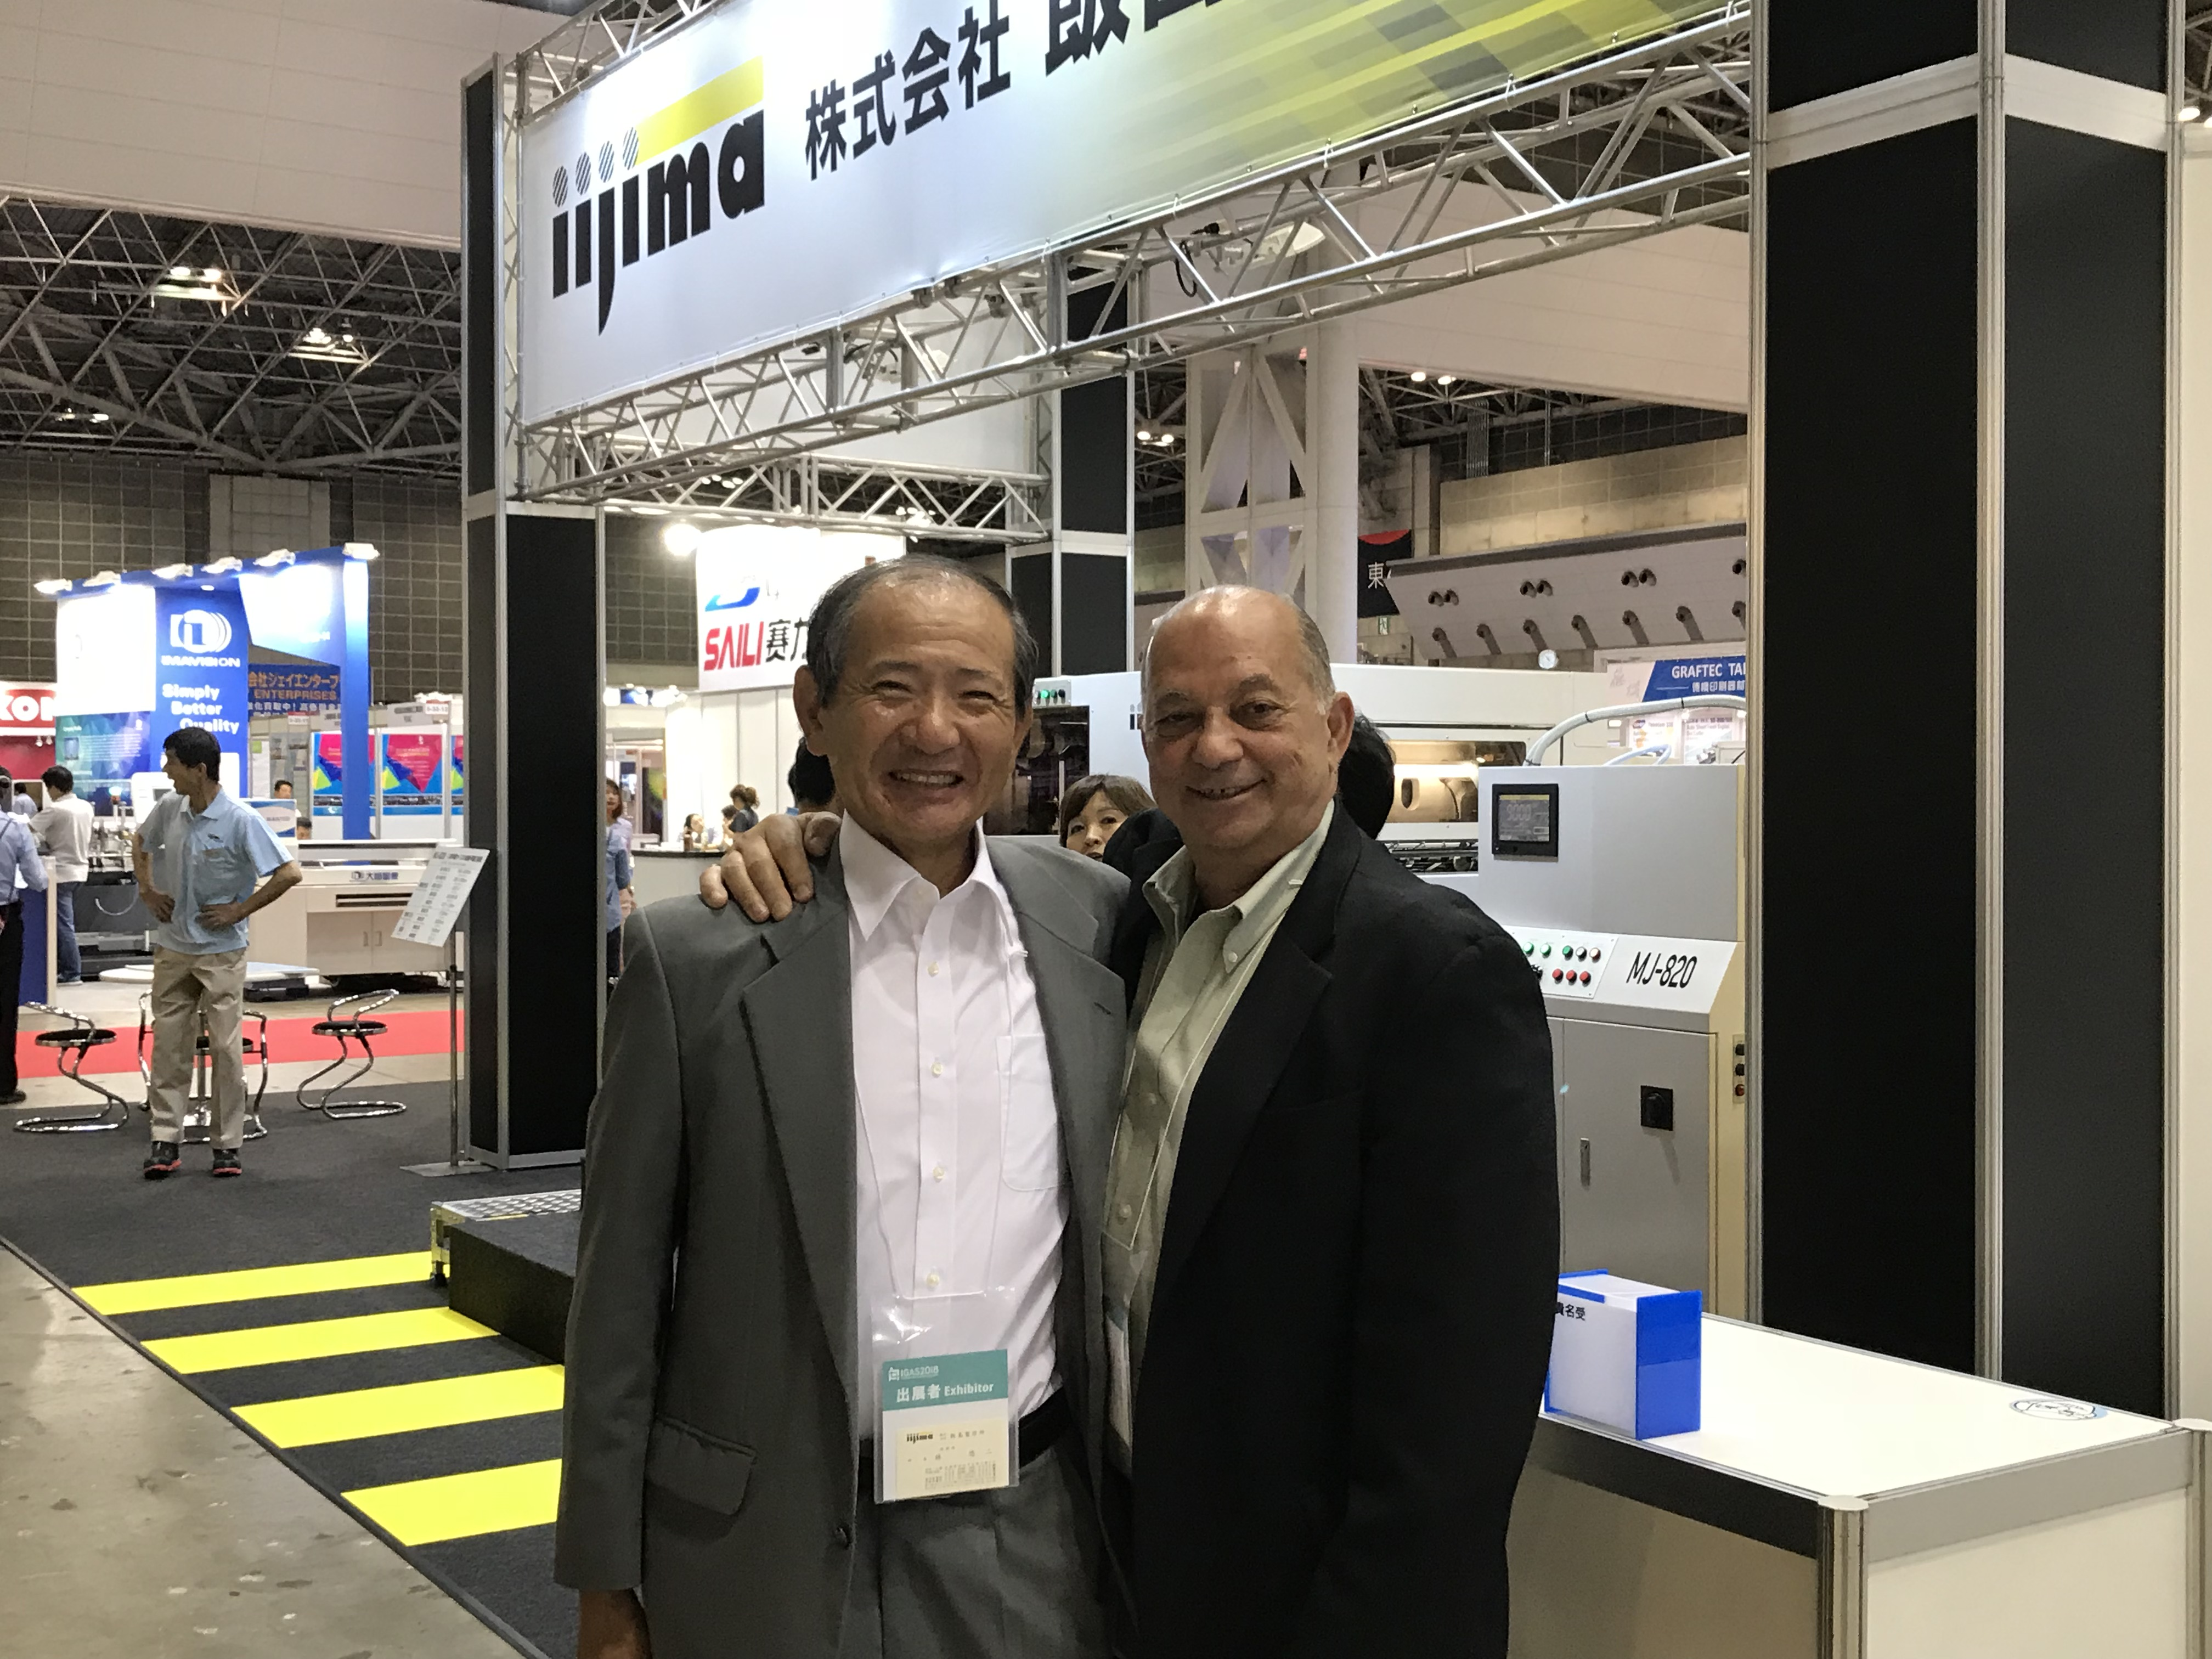 Friends for a long time, Mr Hayashi and Walter Sussuma